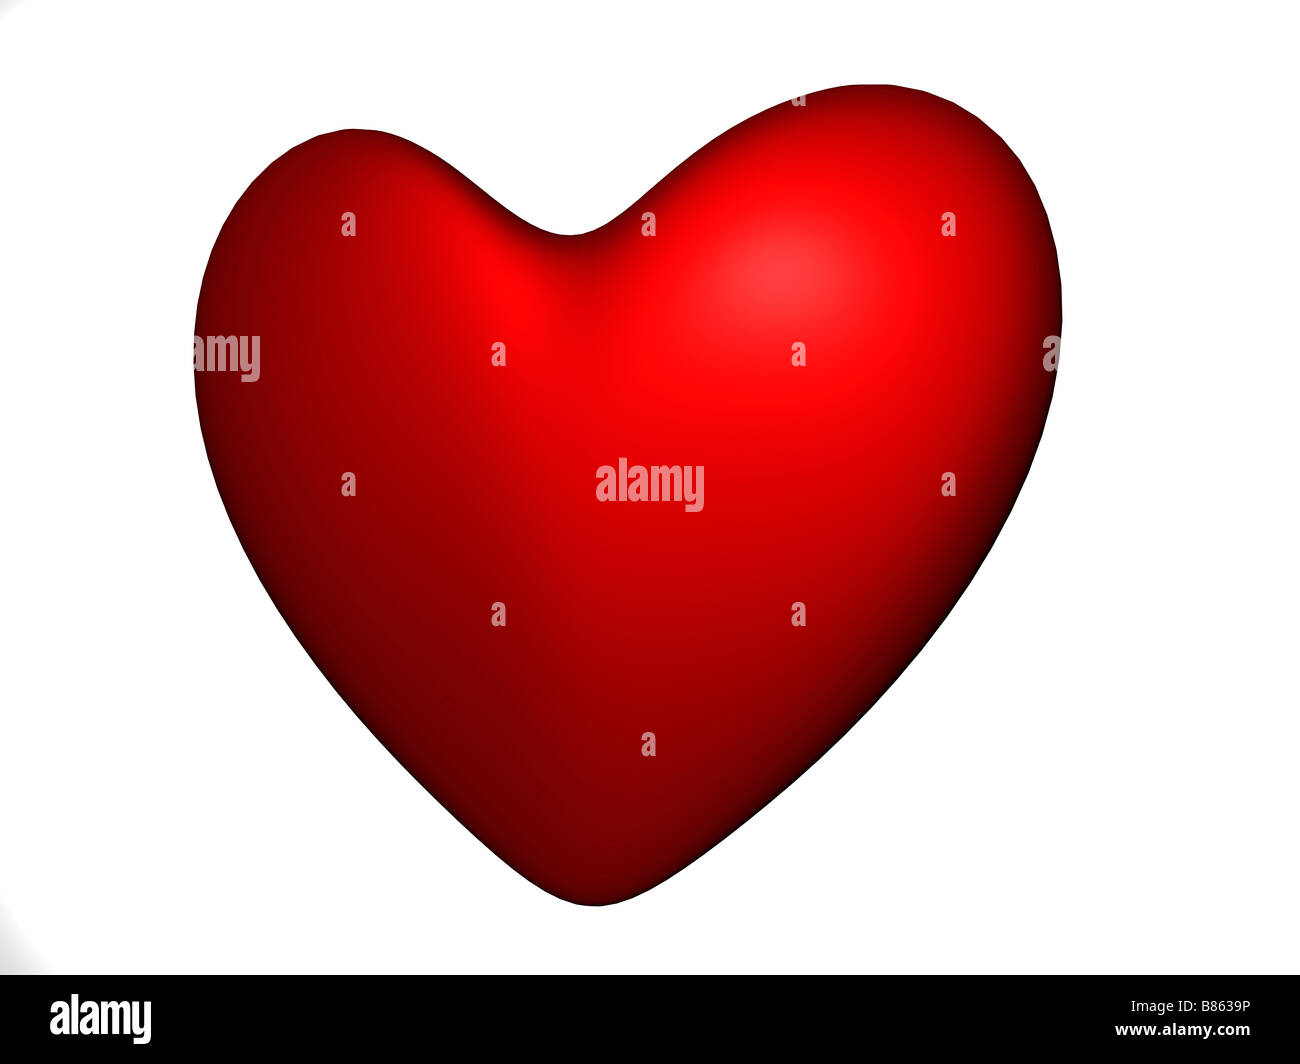 3D render of a red heart Photo Stock